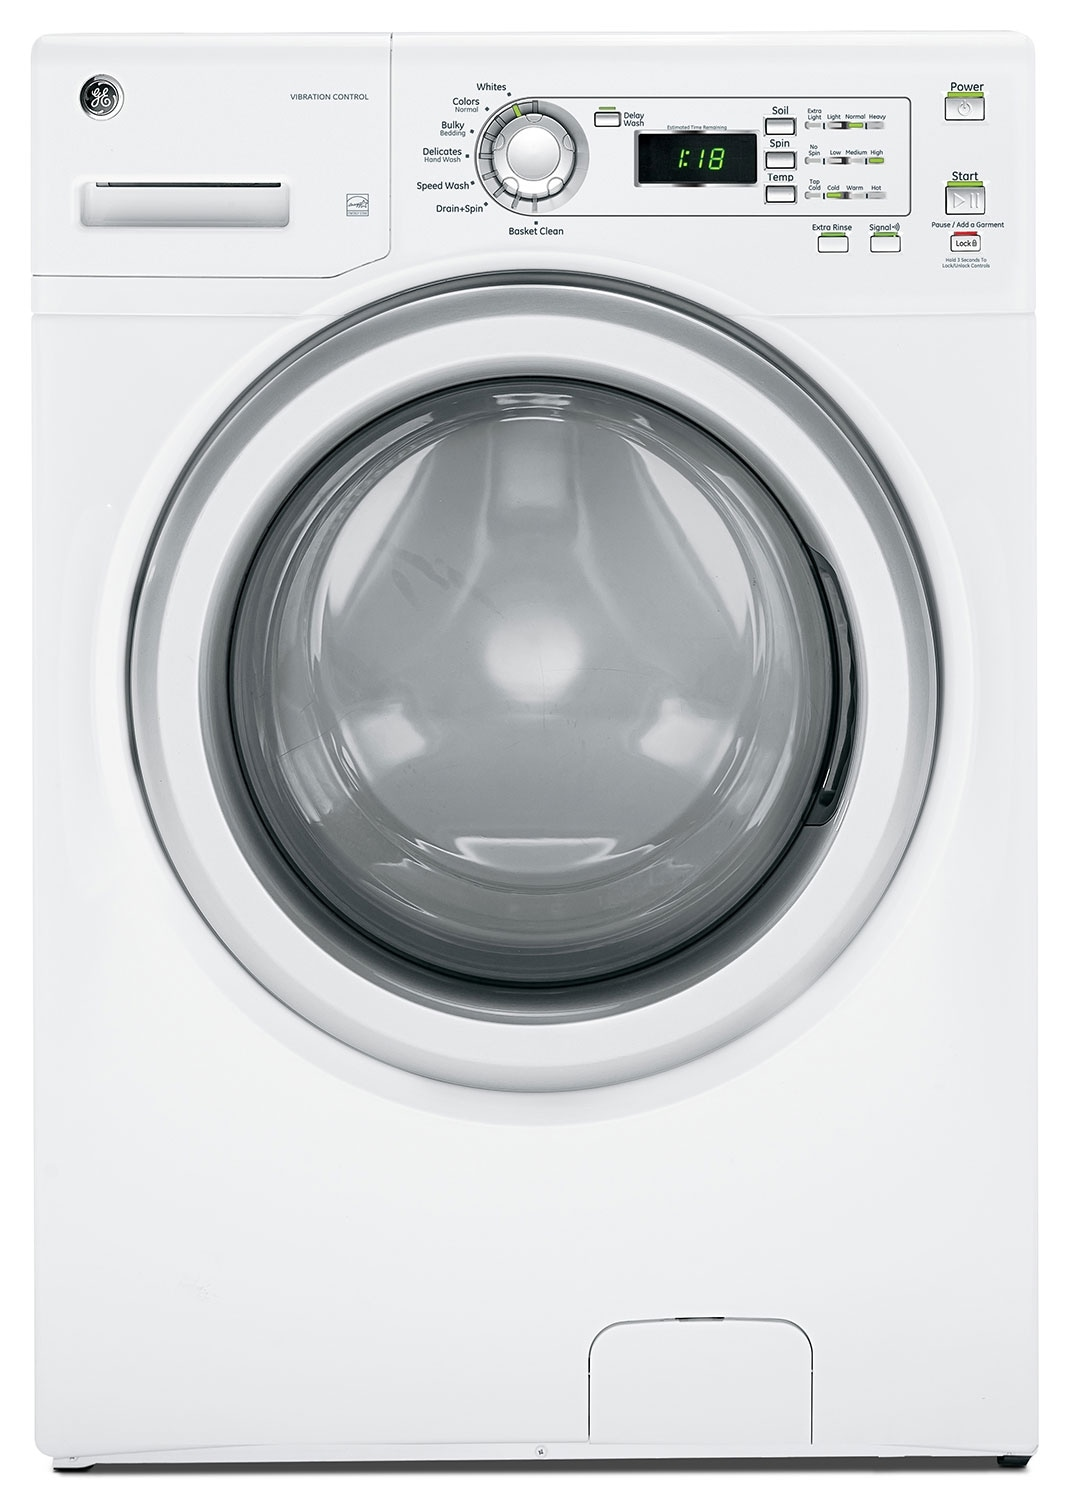 Washers and Dryers - GE White Front-Load Washer (4.2 Cu. Ft. IEC) - GFWN1100HWW